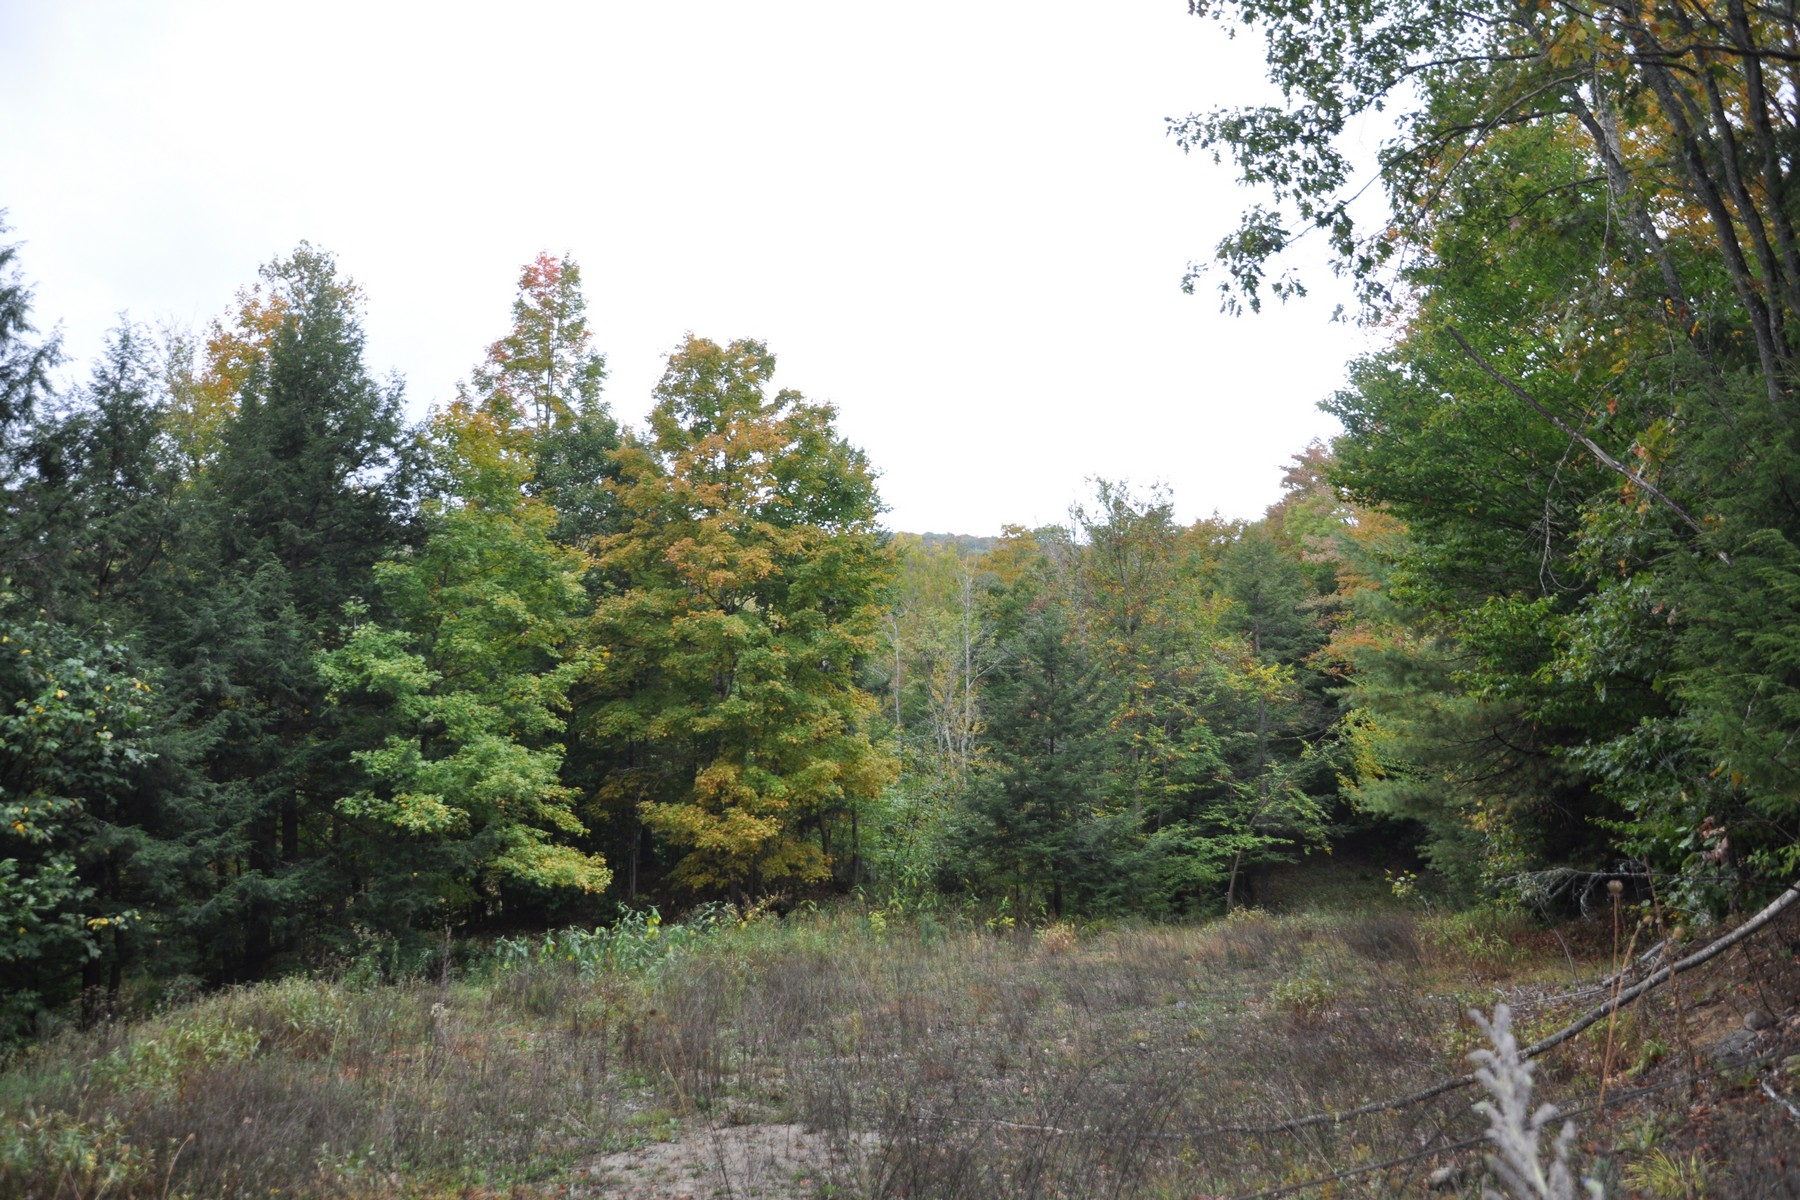 Terrain pour l Vente à 177+ Acre Parcel With 2 Acre Cleared Building Site 45 Valley Rd Thurman, New York 12810 États-Unis